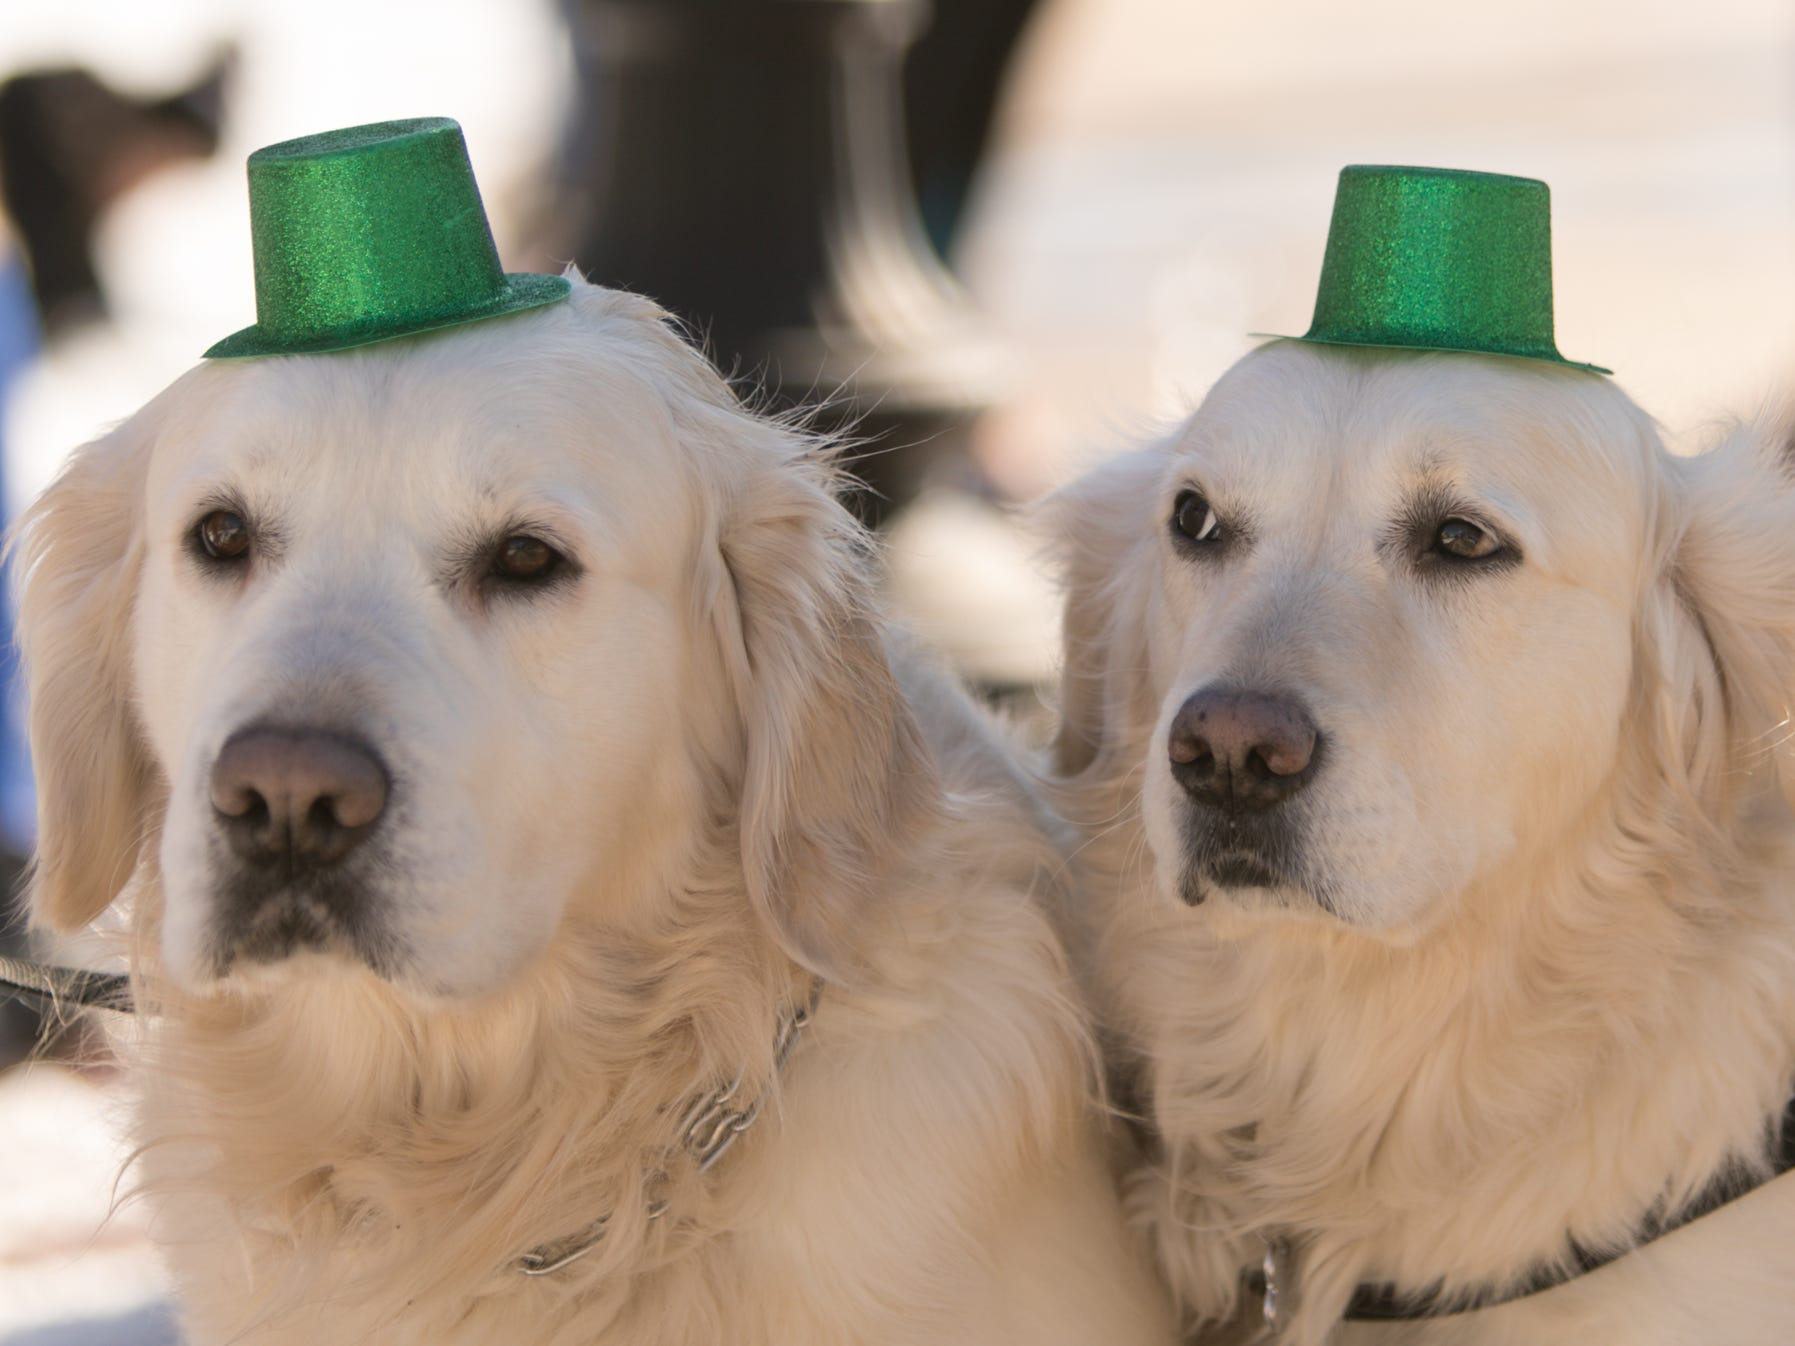 English cream golden retrievers Buddy, left, and Snoopy are dressed for the occasion of the Pinckney St. Patrick's Day parade Saturday, March 16, 2019.